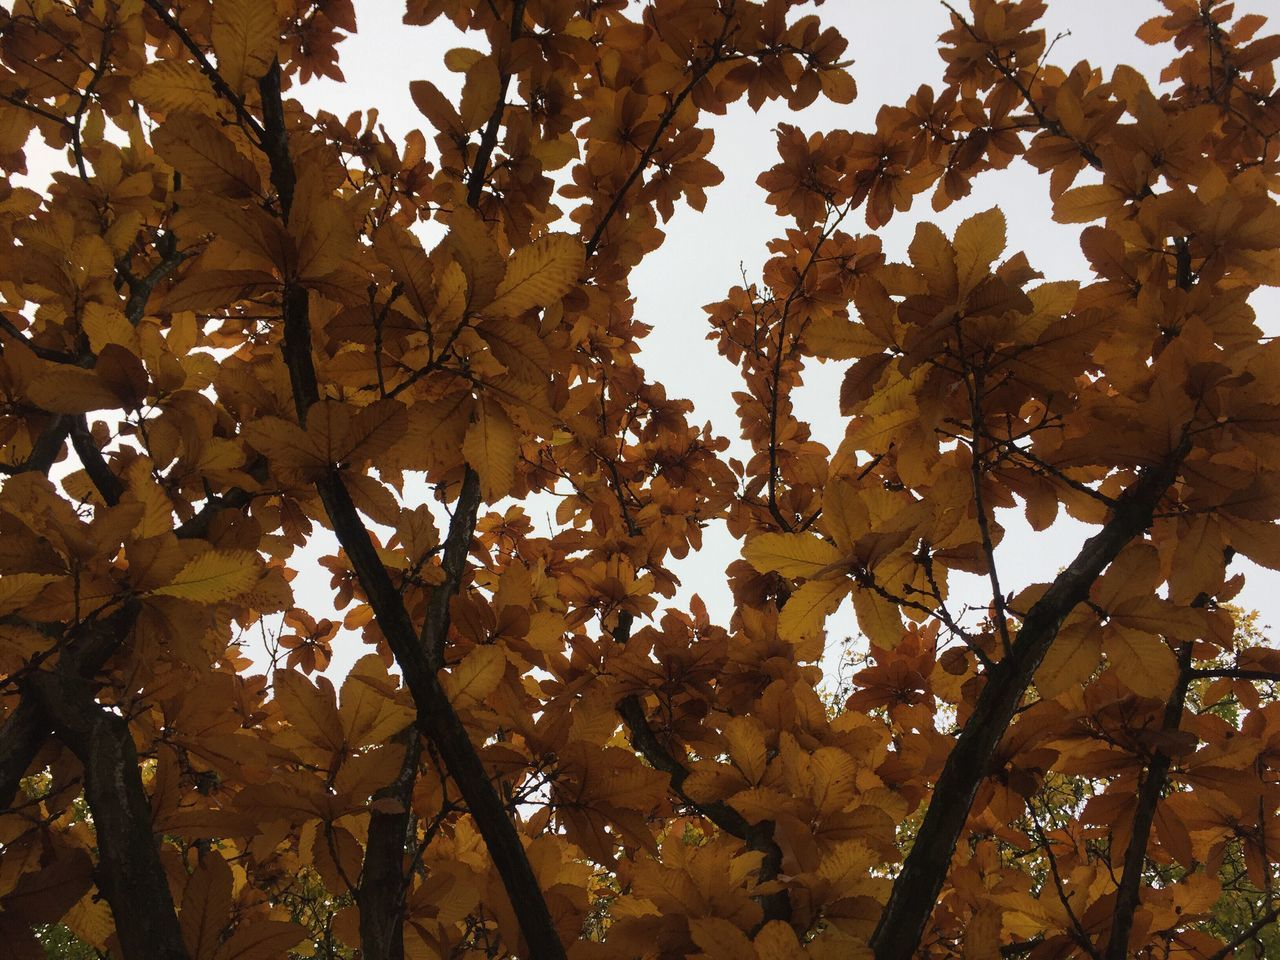 tree, growth, branch, nature, low angle view, leaf, beauty in nature, day, outdoors, freshness, autumn, no people, fragility, flower, close-up, sky